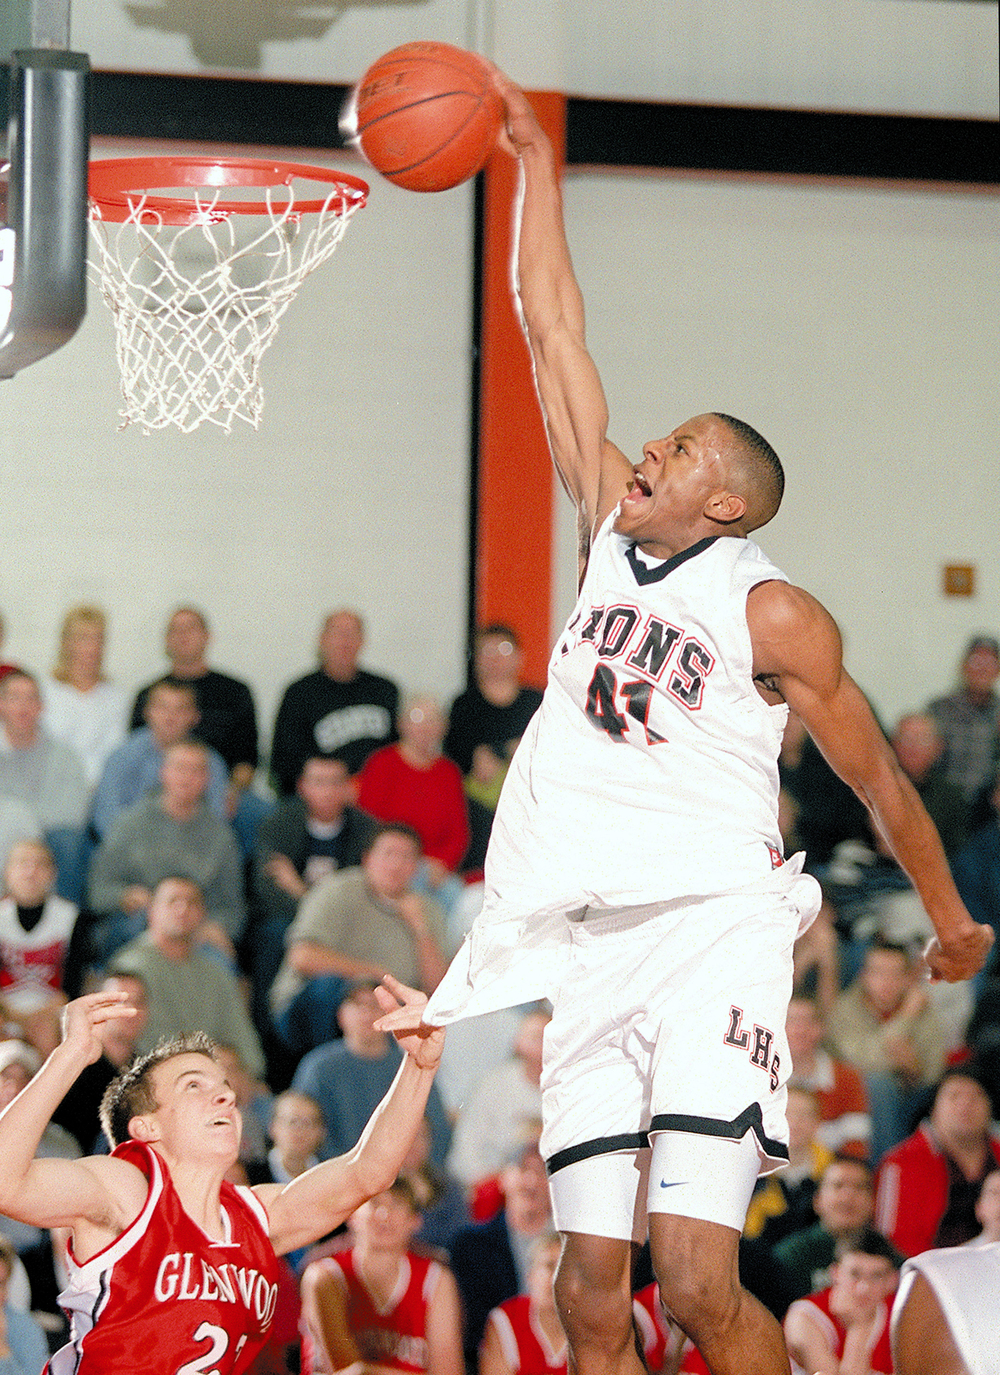 Lanphier's Andre Iguodala flies down the lane with a thunderous dunk during the first half of action against the Glenwood Titans, Jan 11, 2002. File/The State Journal-Register